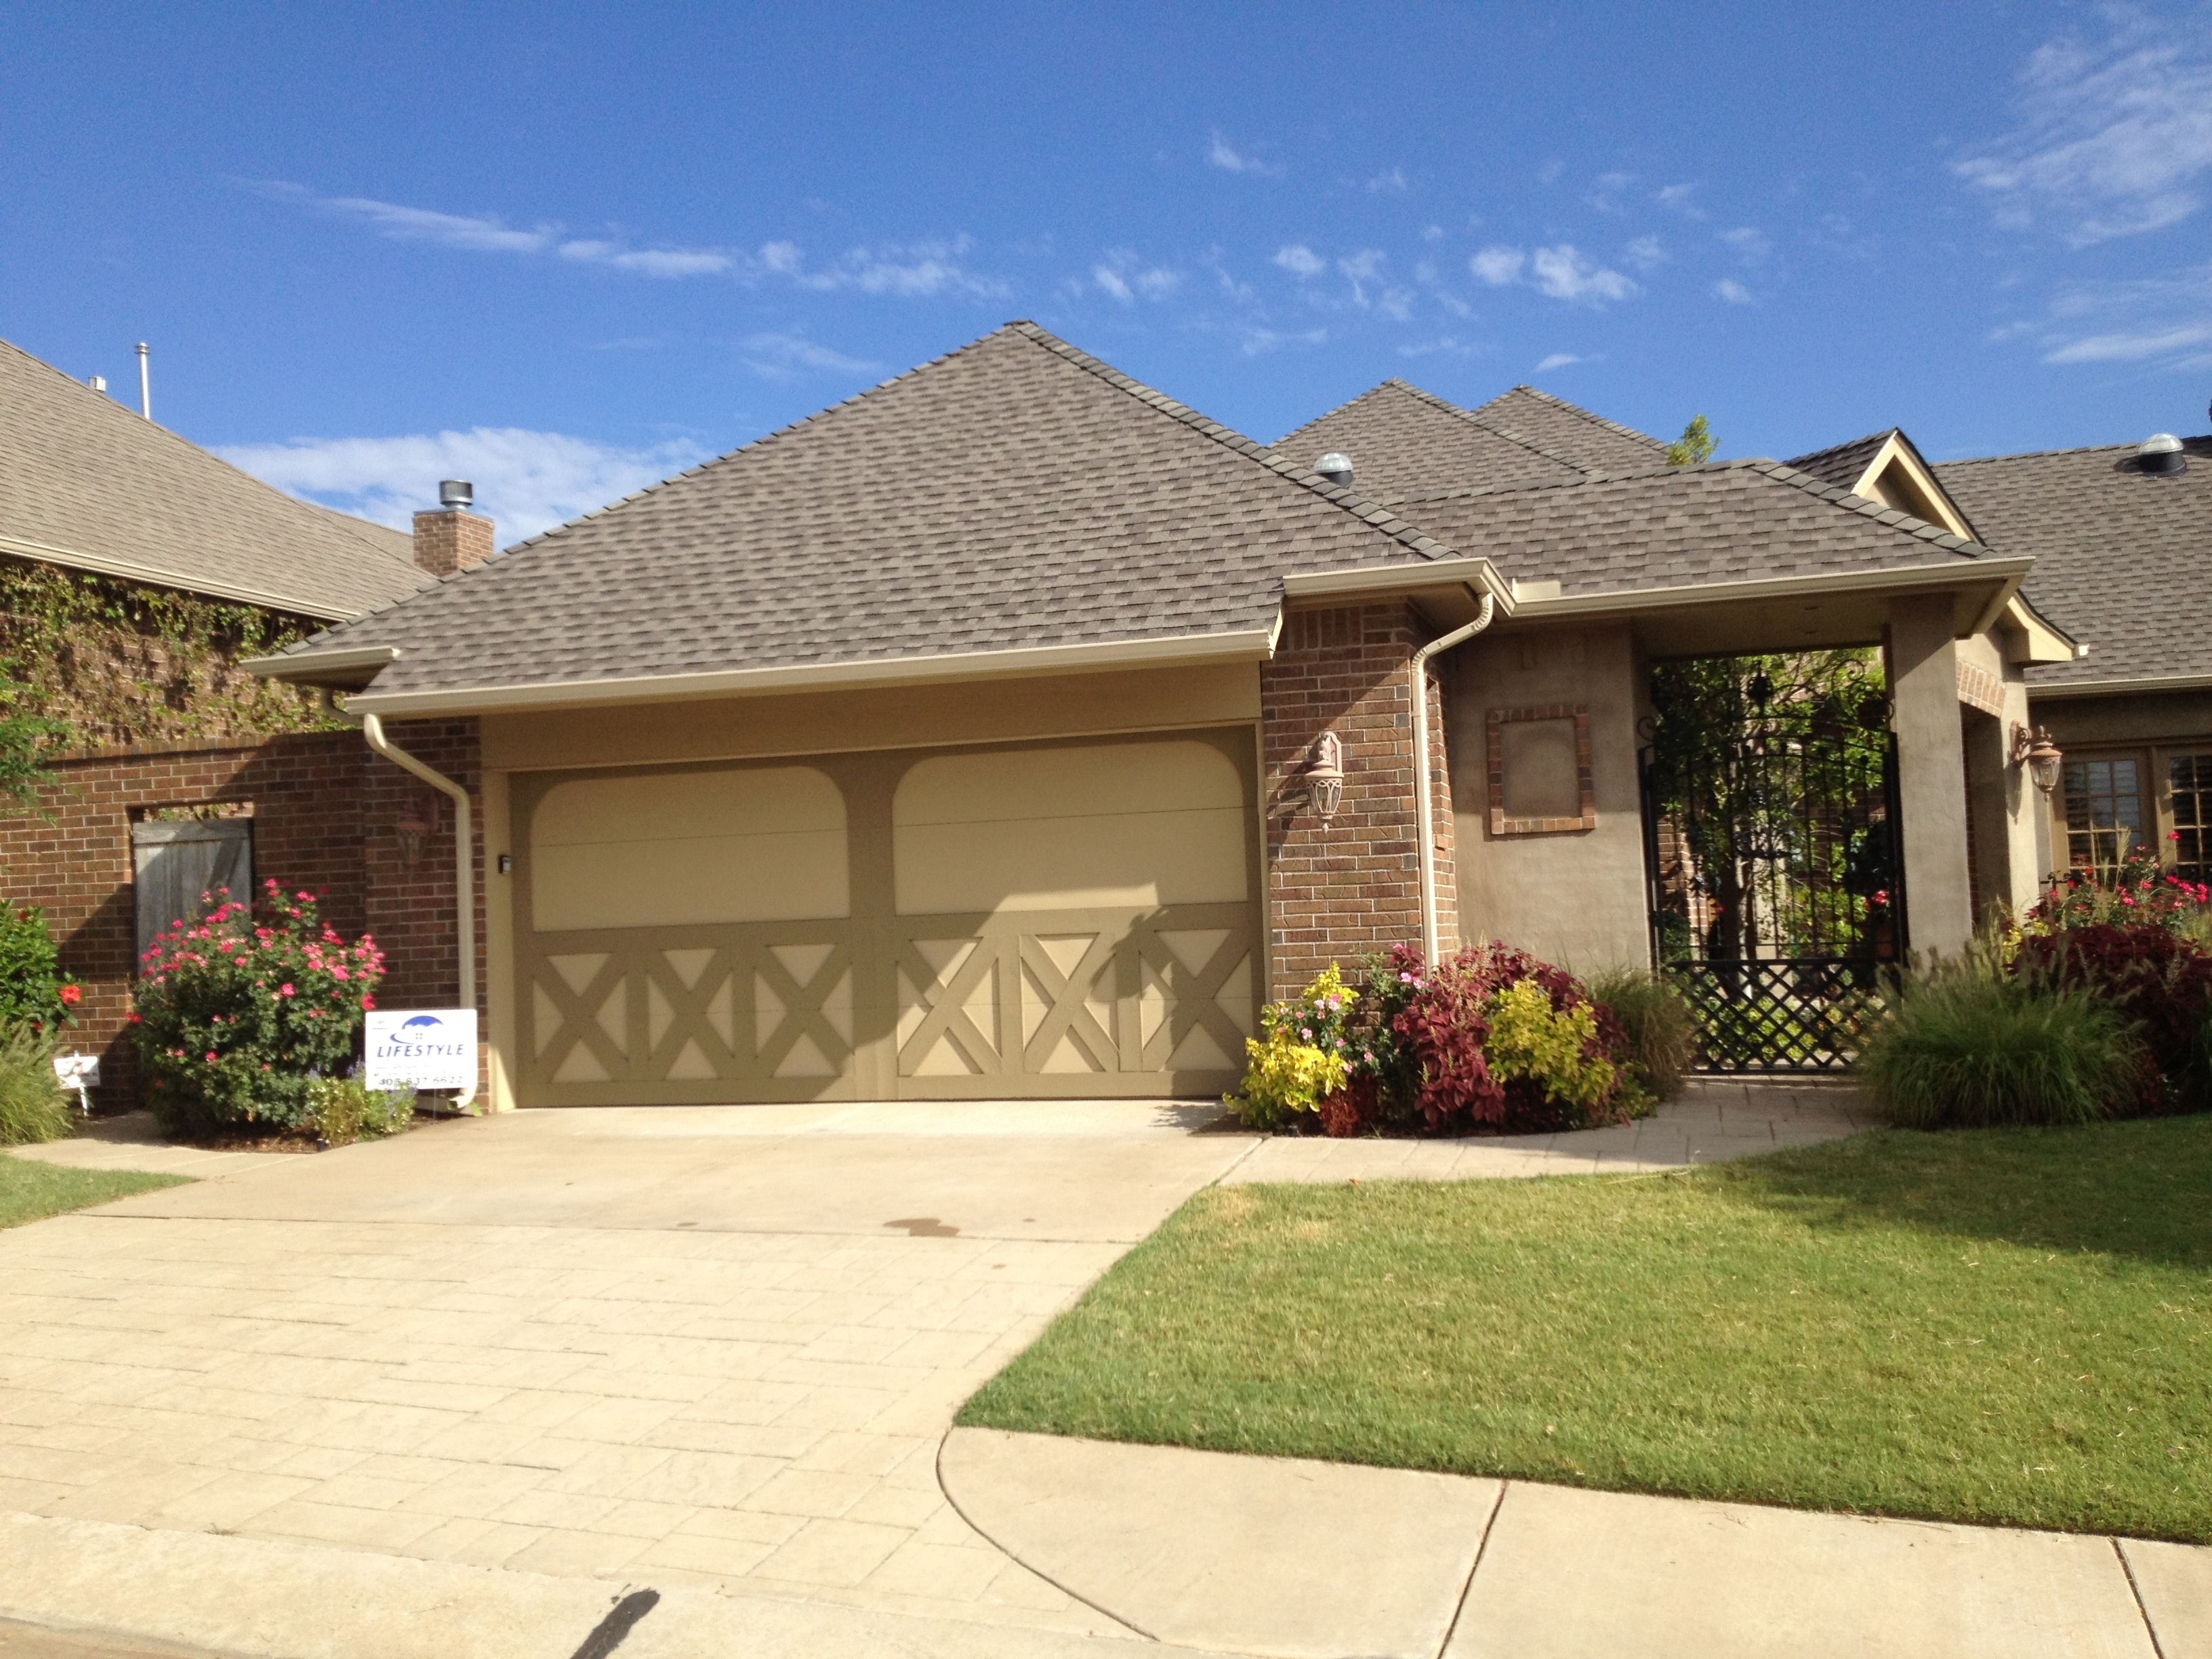 Lifestyle home improvement okc inc roofing and Building a house in oklahoma